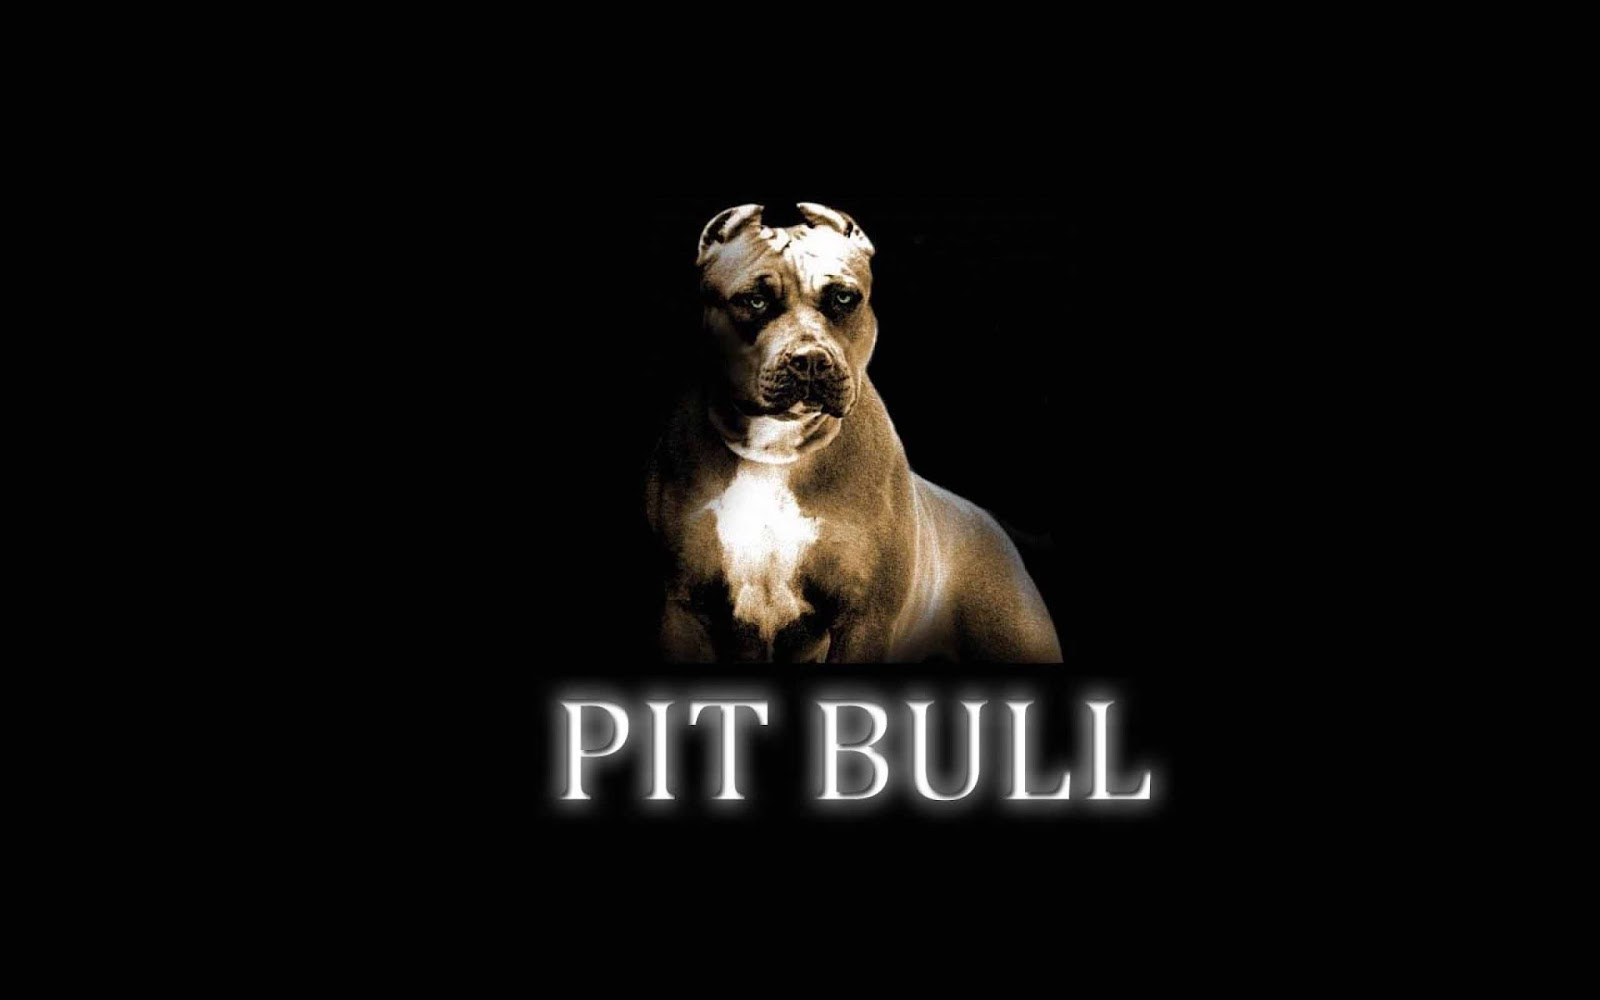 HD Wallpapers Pitbull Dog Wallpapers 1600x1000